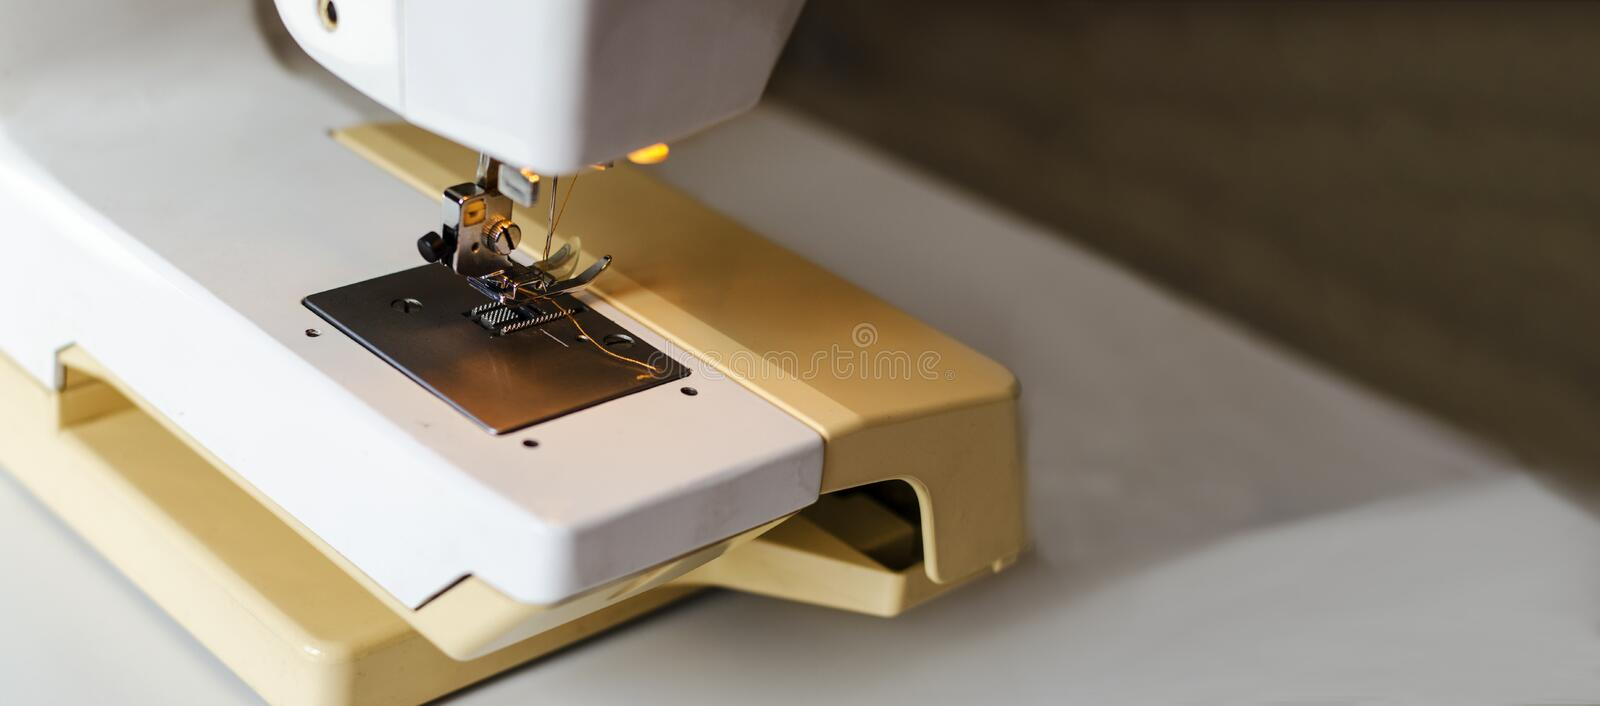 Sewing machine. Work by the light of the built-in hardware lamp. Steel needle with looper and presser foot close-up stock photography